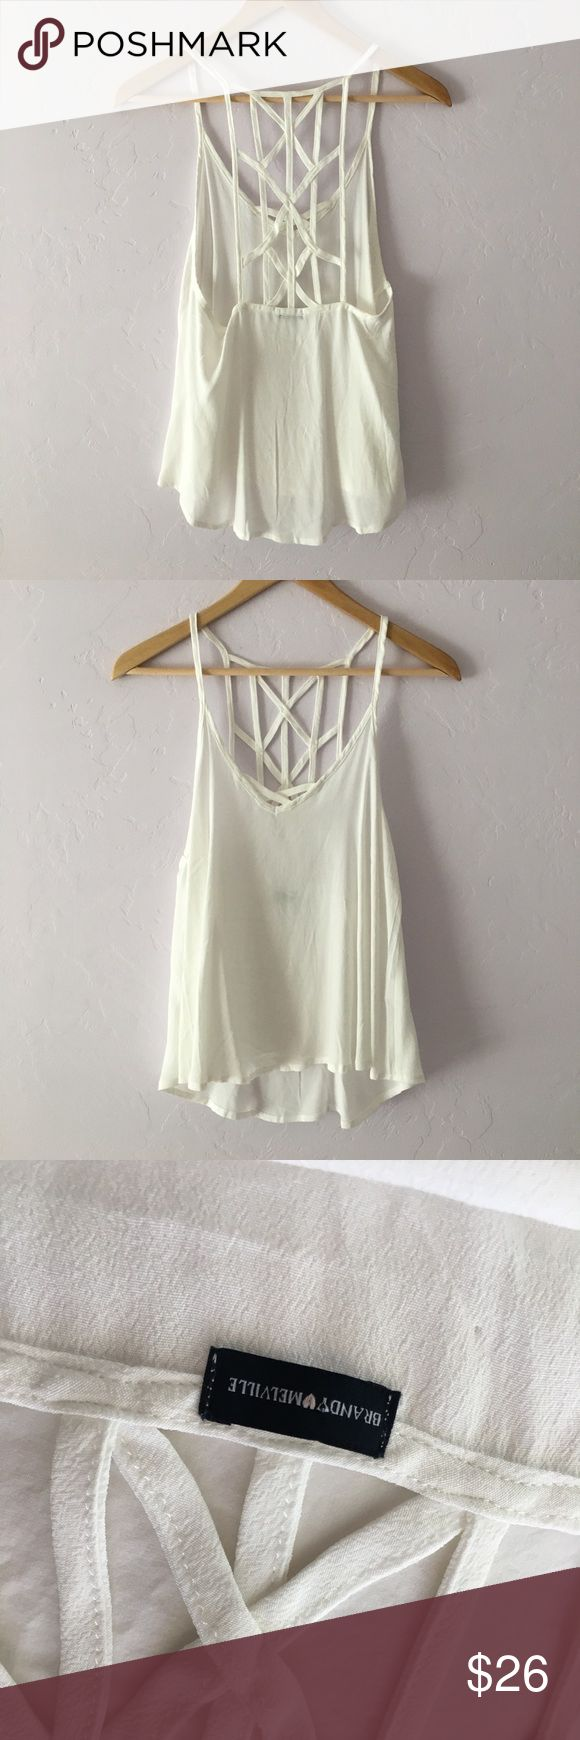 Brandy Melville Caged Back Tank White crepe Brandy tank with intricate strappy caged racerback. Worn once to the beach and has sat in my closet ever since. In perfect condition with no signs of wear. Brandy Melville Tops Tank Tops